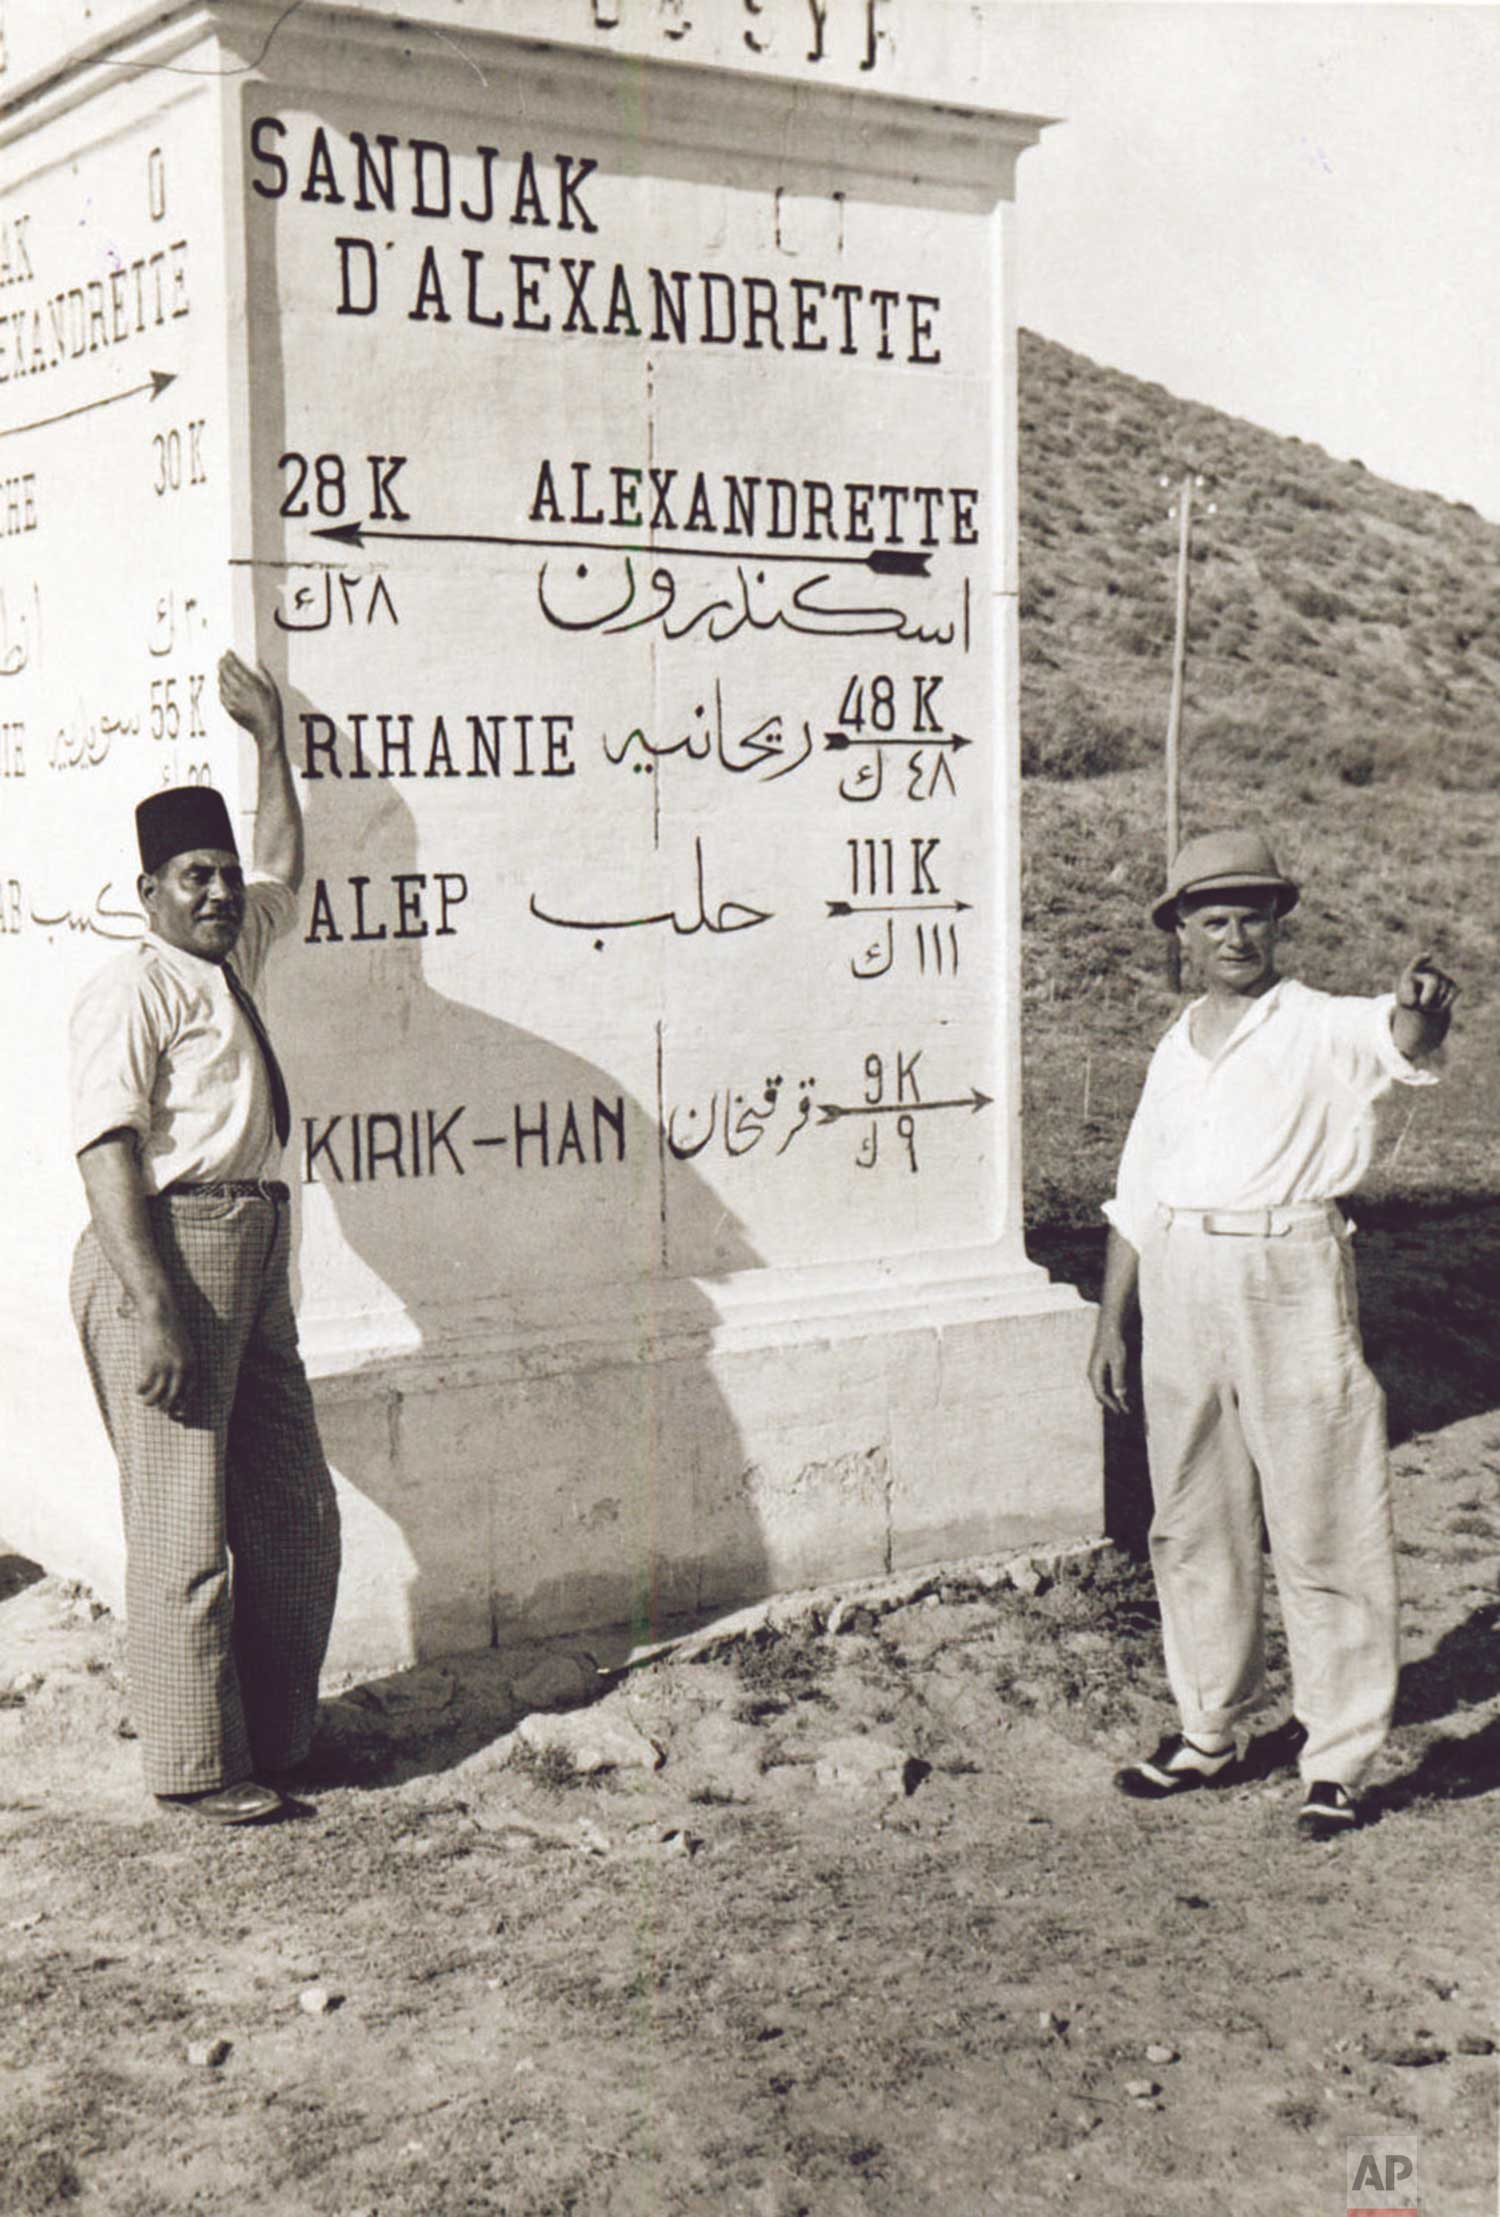 Associated Press Foreign Correspondent James A. Mills (1883-1942), right, is pictured with an undentified friend beside a roadside mileage marker near Alexandrette in what is now Turkey, on September 2, 1938. At the time, Mills was reporting from the Middle East.